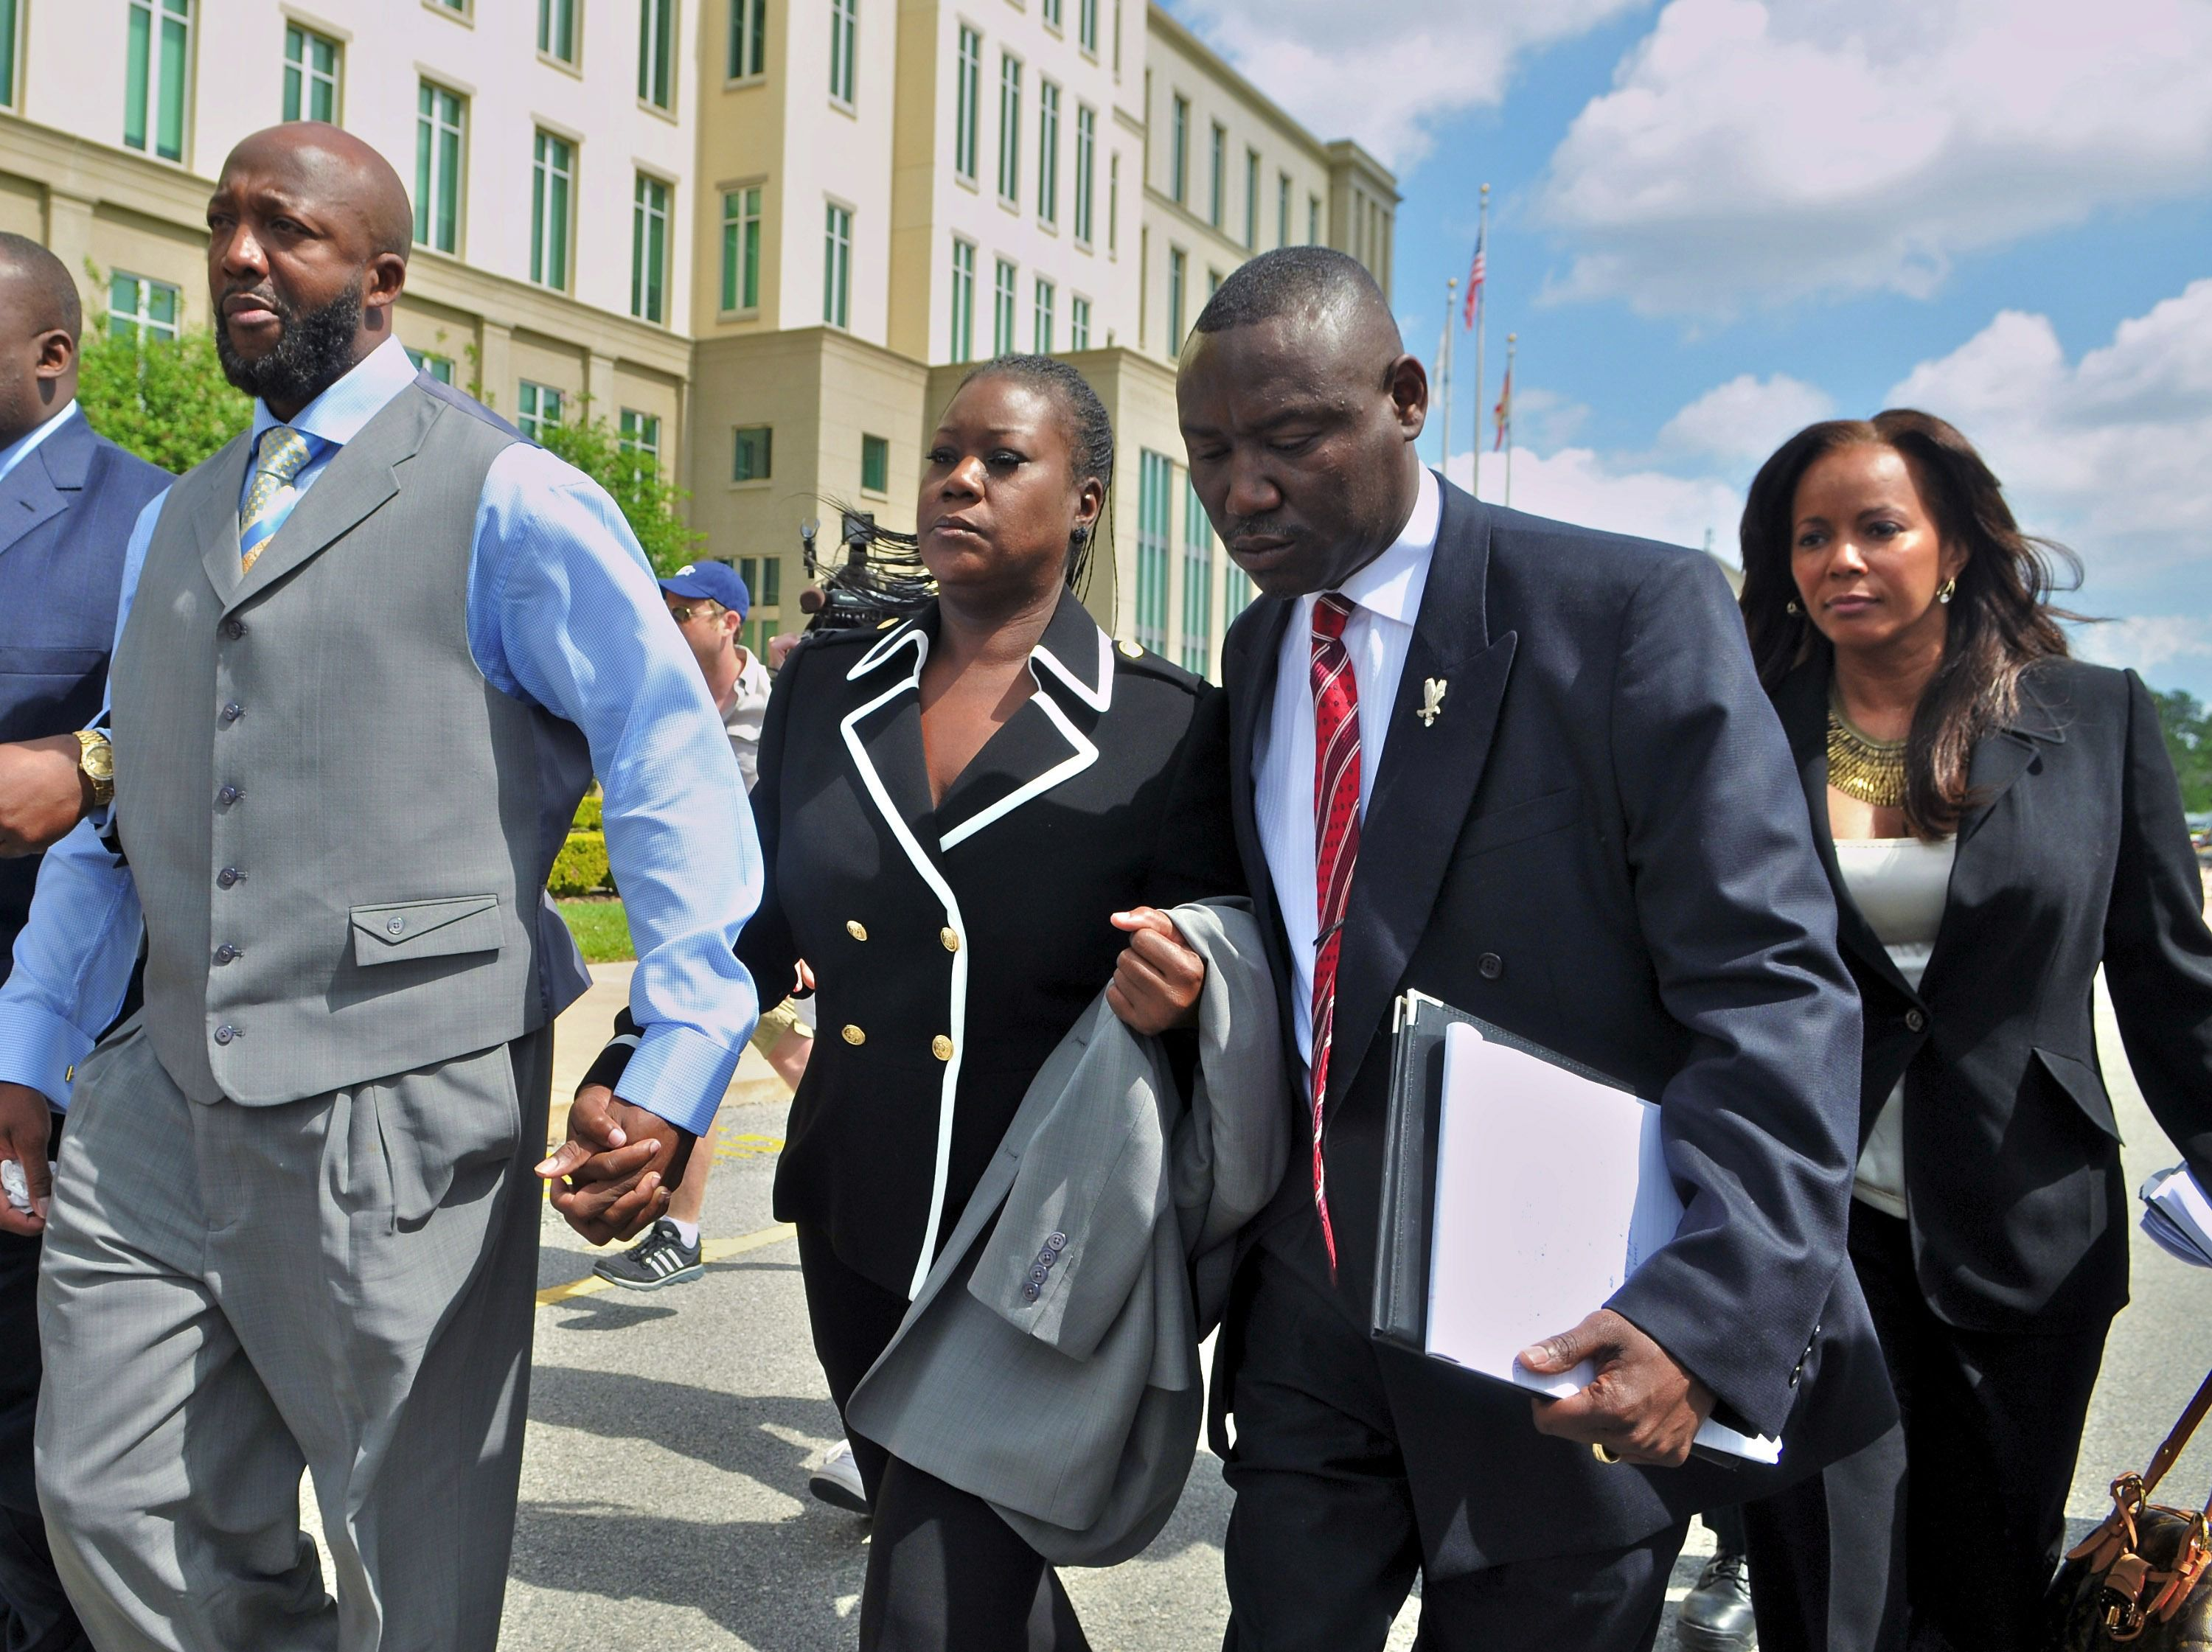 Tracy Martin and Sybrina Fulton, parents of Trayvon Martin, their attorney Benjamin Crump and attorney Natalie Jackson leave Seminole County courthouse without talking to reporters after the bond hearing for George Zimmerman.